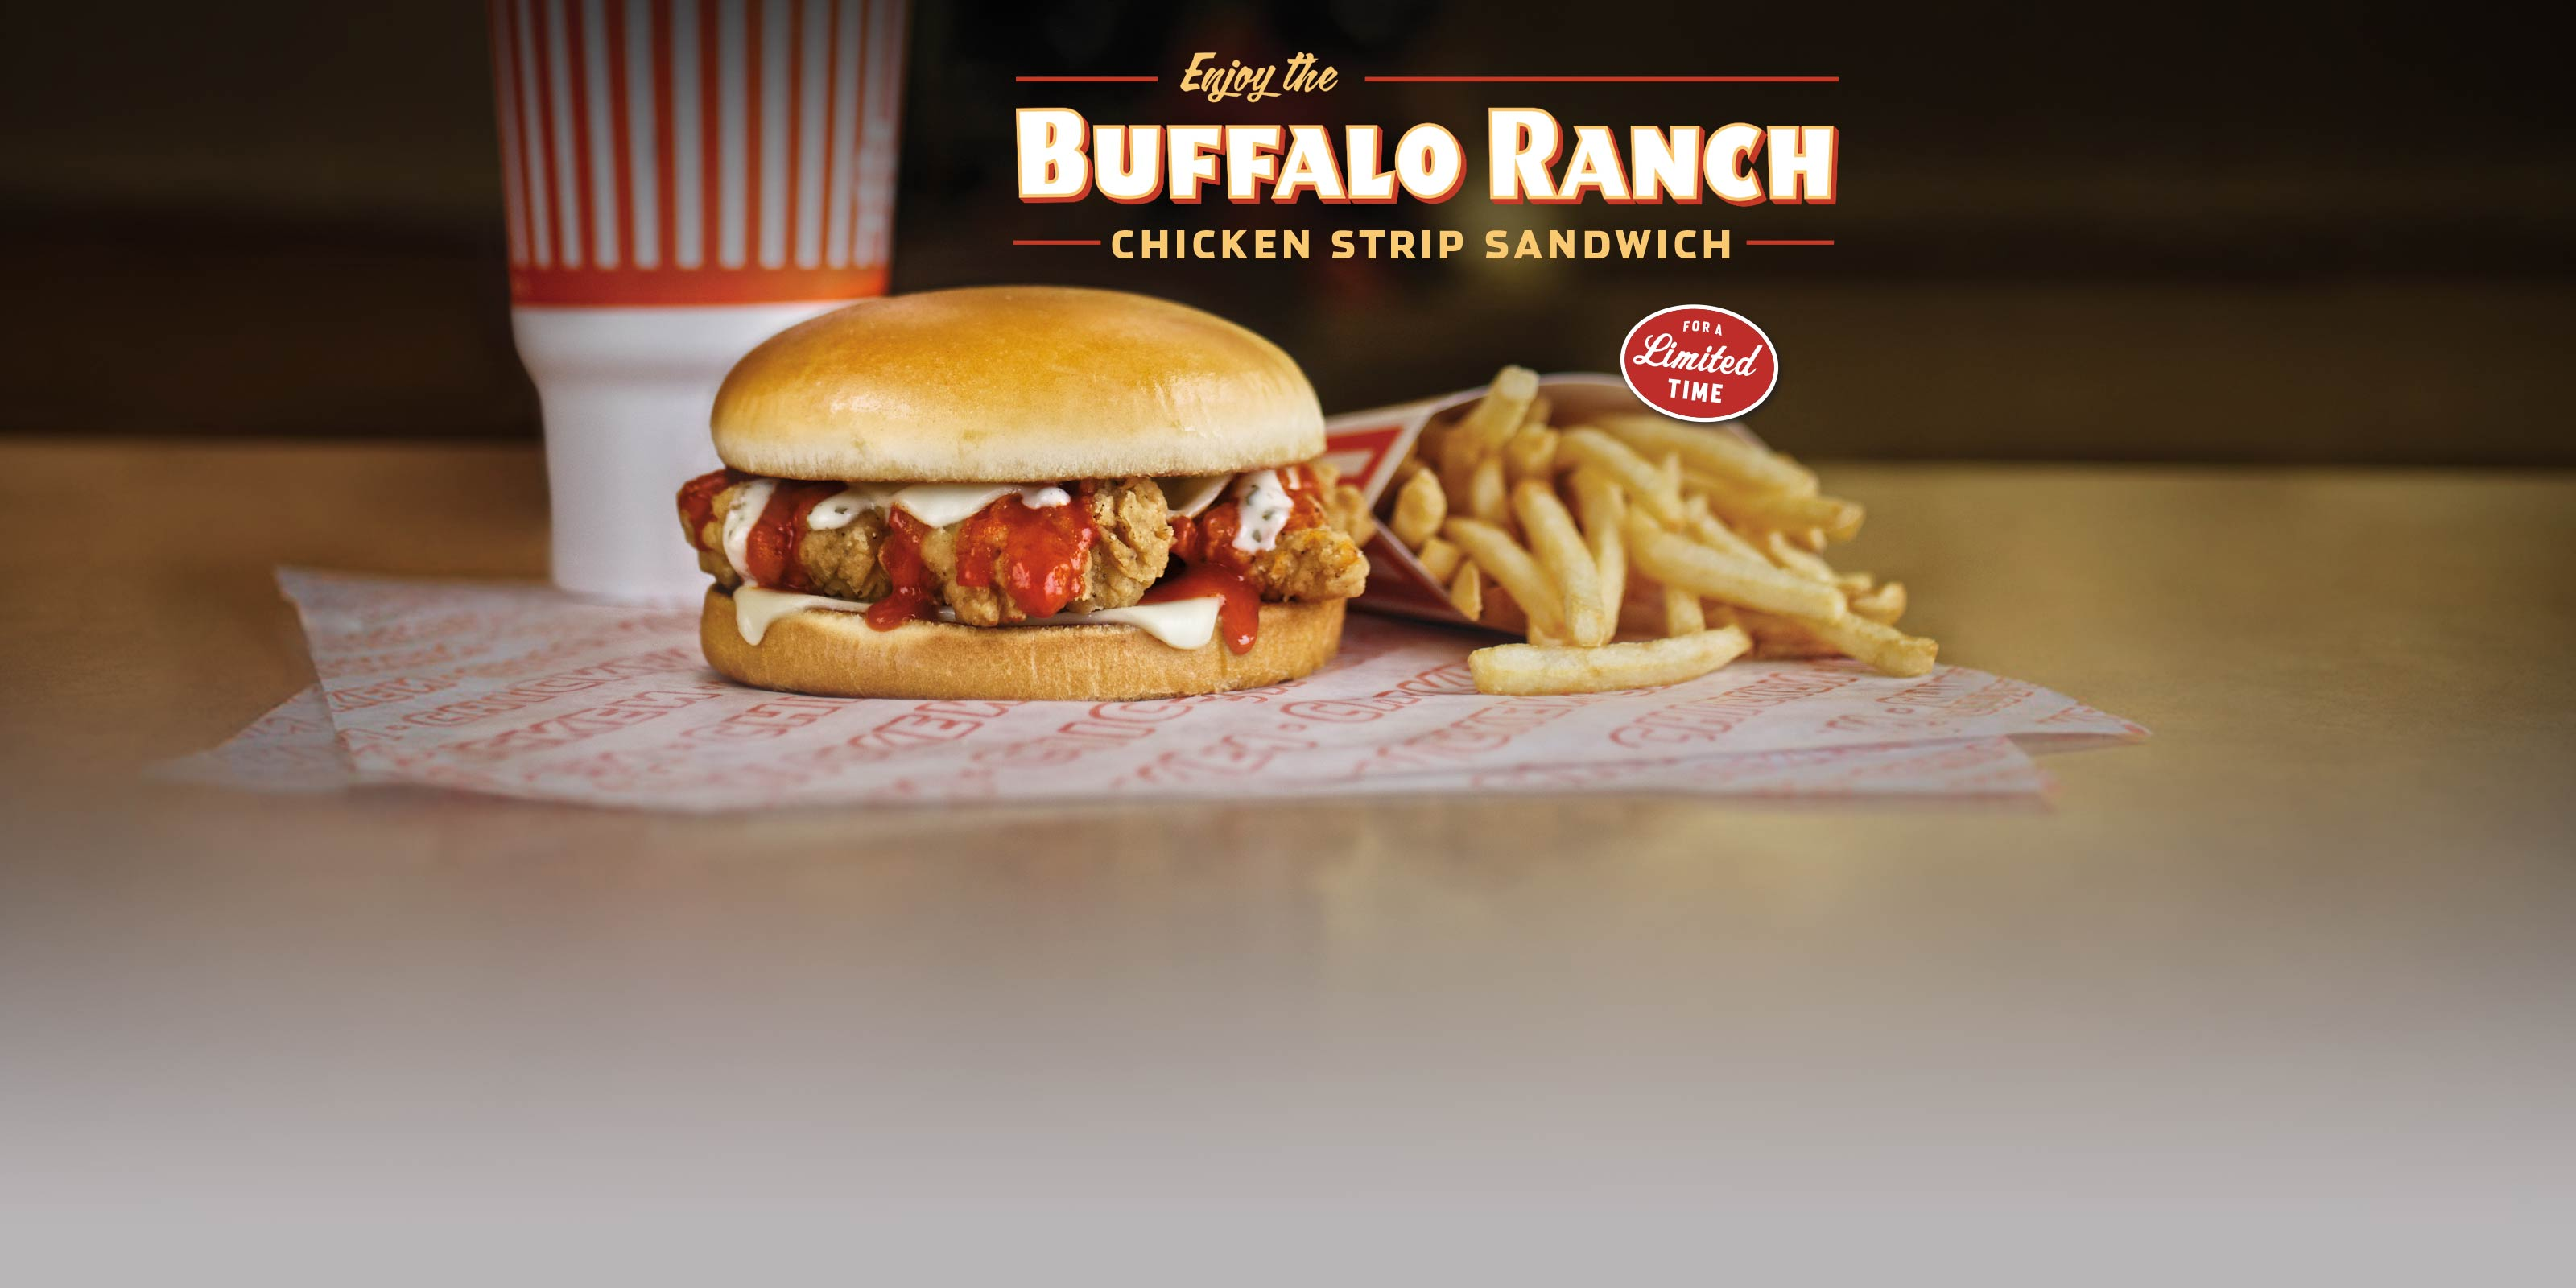 Buffalo Ranch Chicken Strip Sandwich